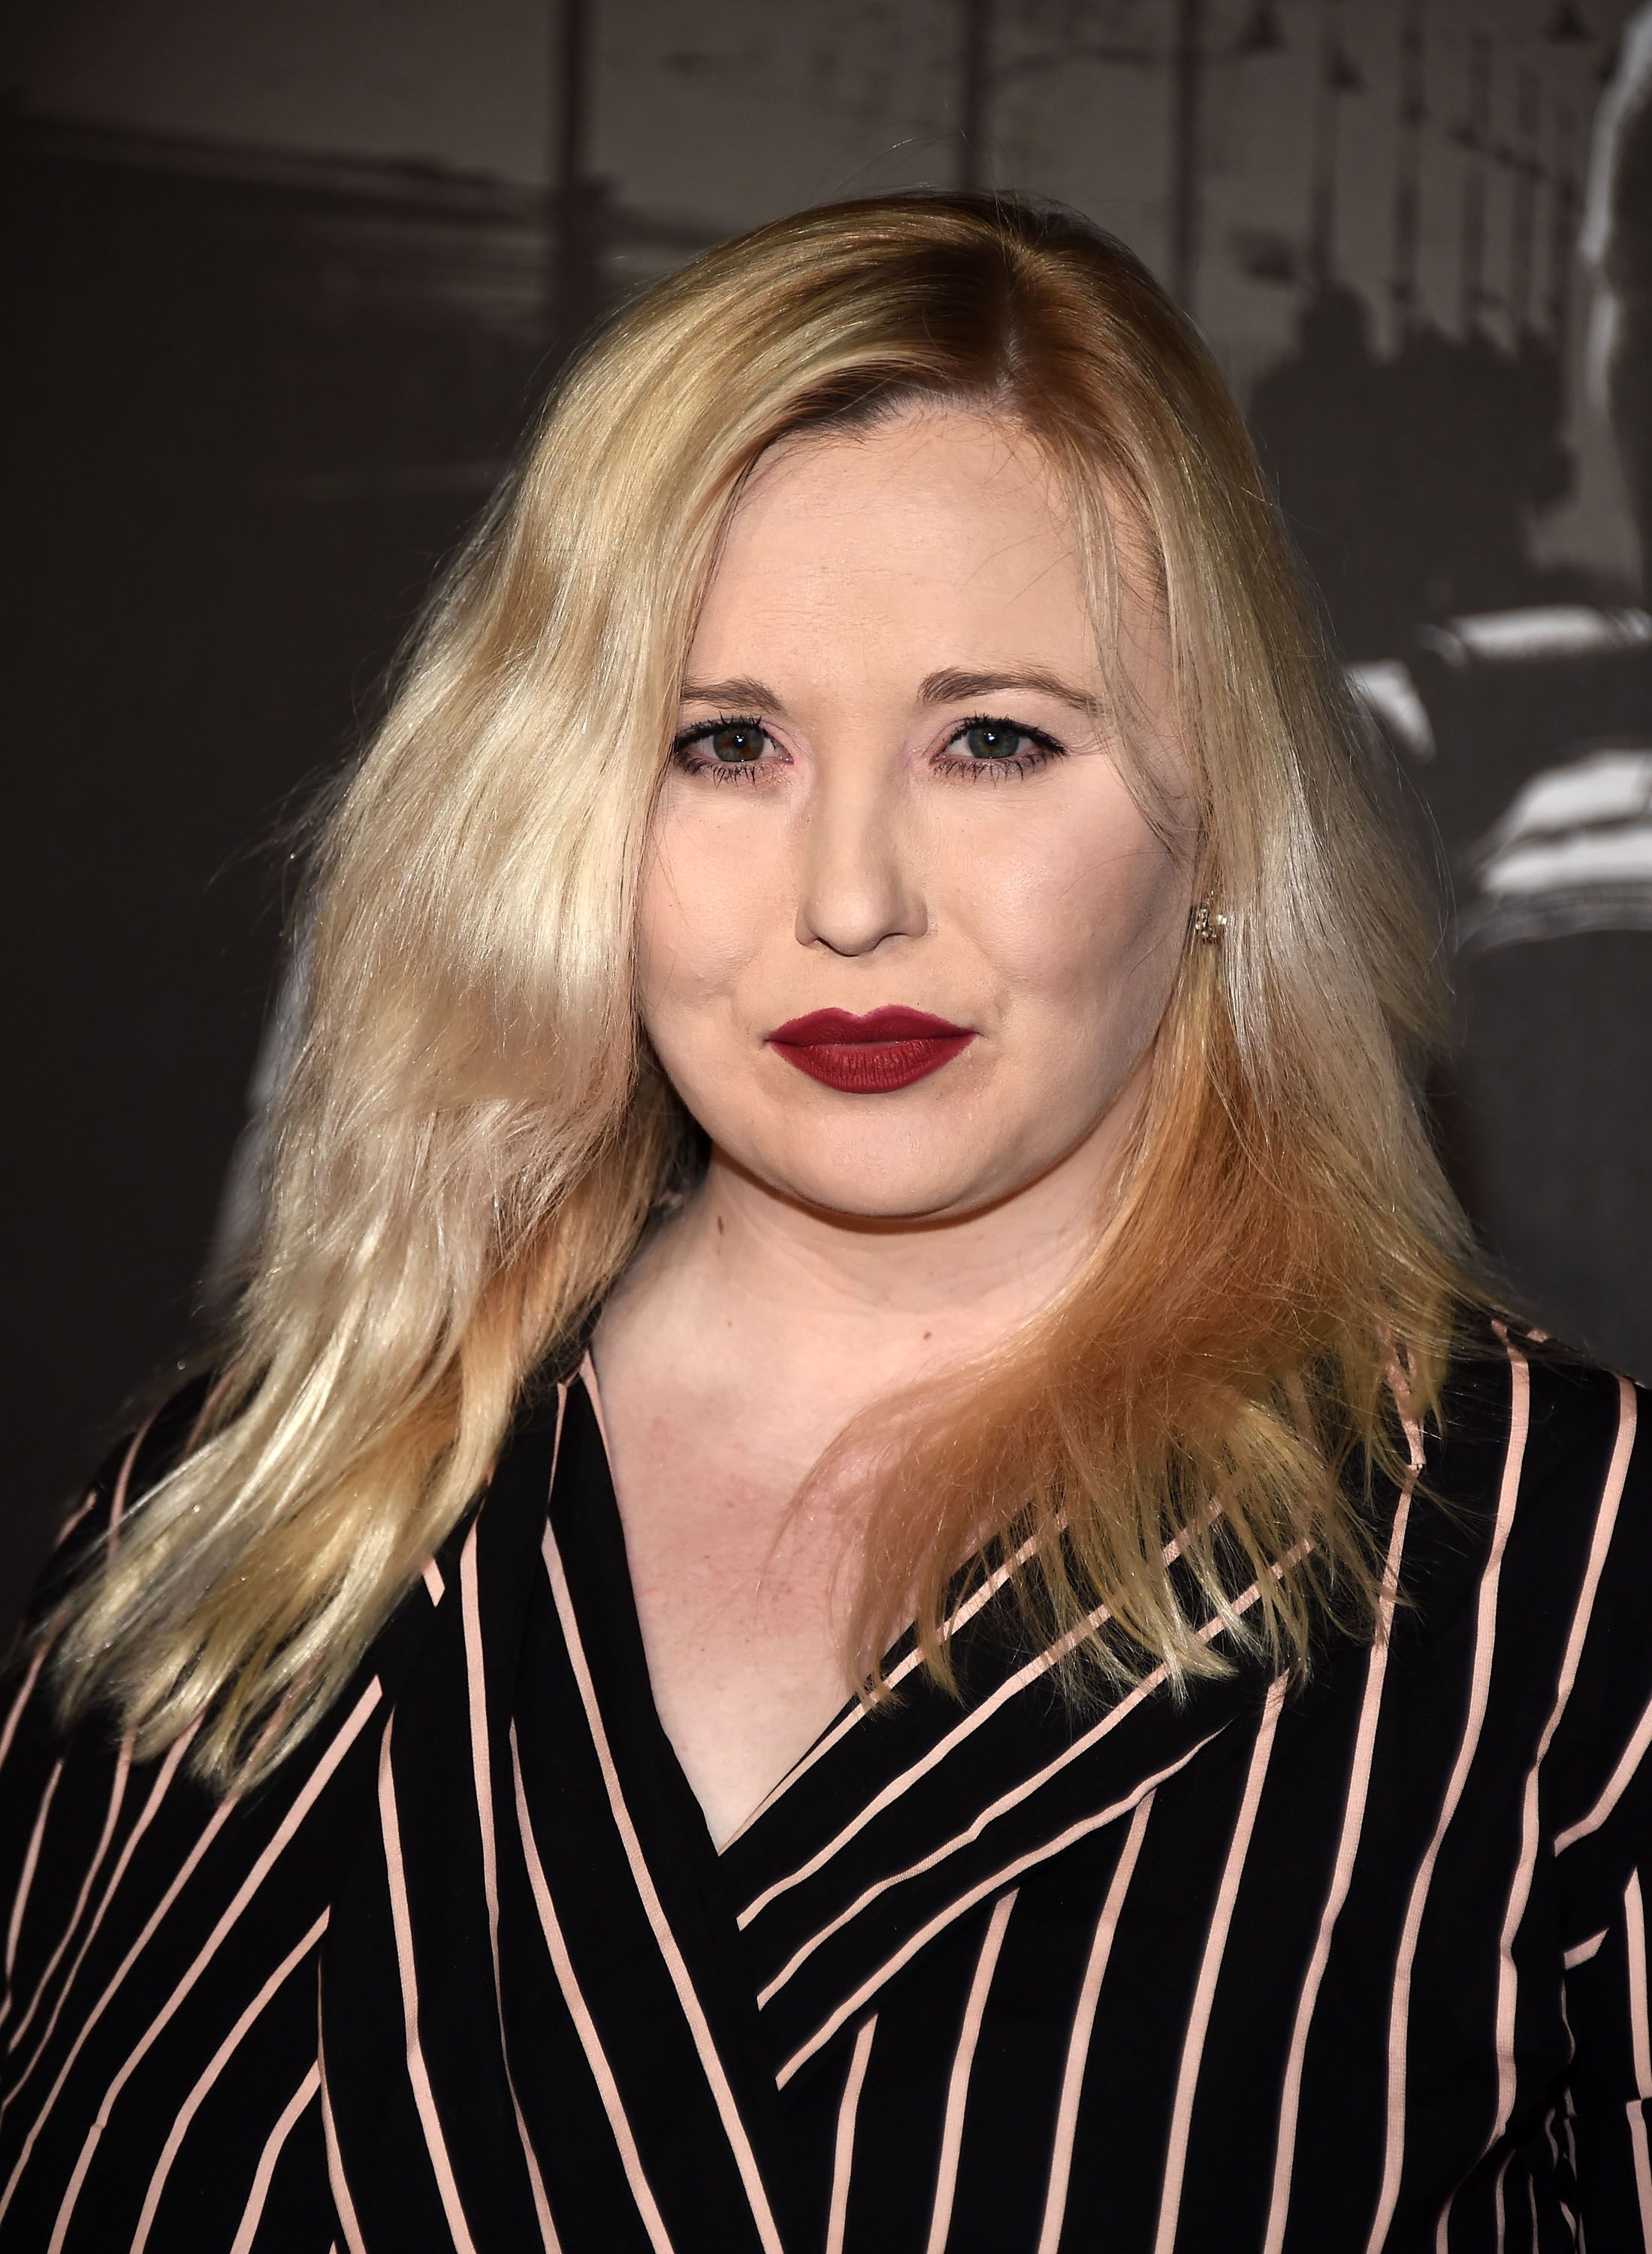 Clint Eastwood's daughter Kathryn works as an actress and screenwriter and was recognized as Miss Golden Globe in 2005.